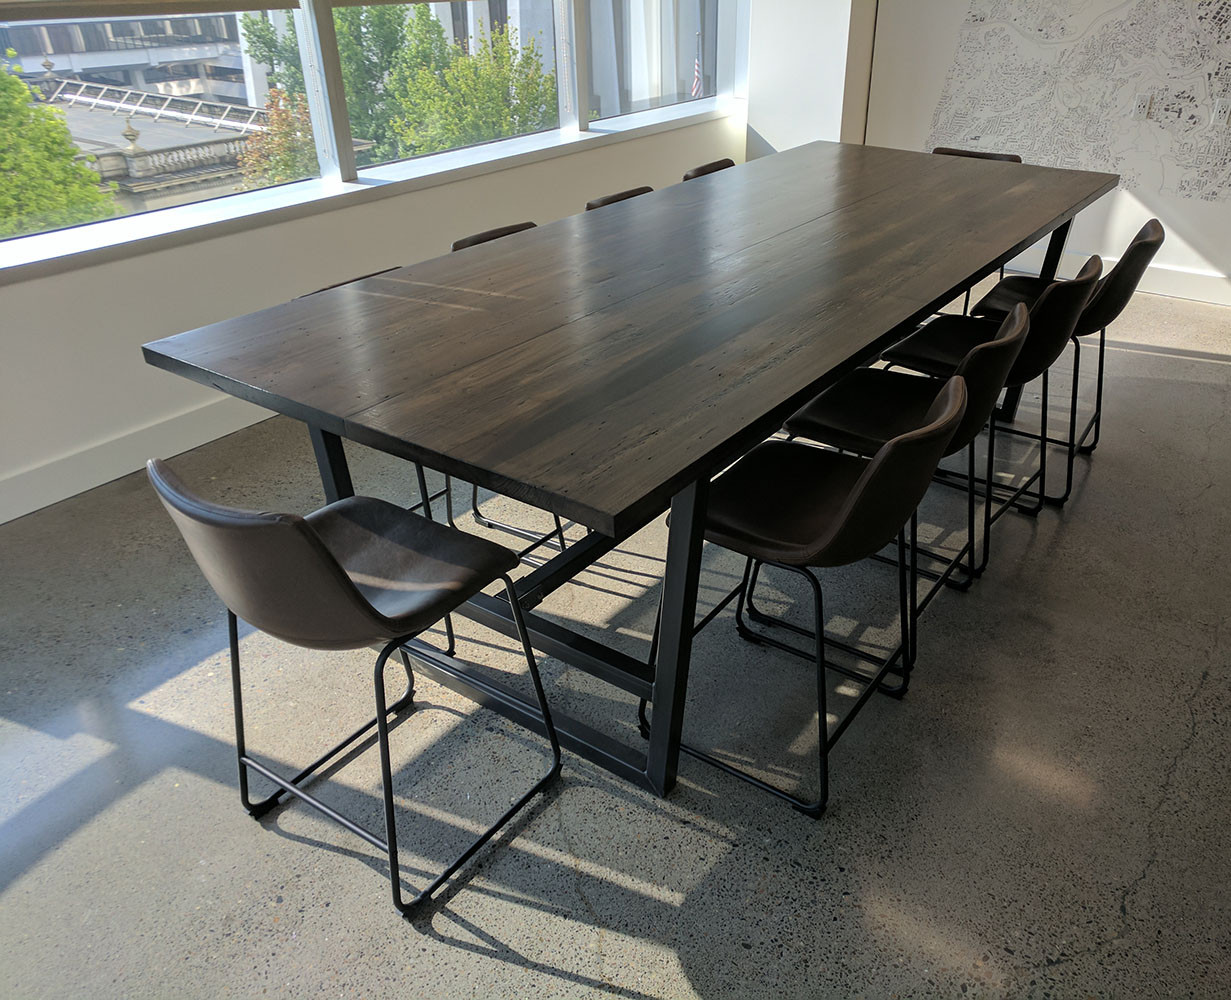 Pacwest Building Recalimed Wood Conference Table